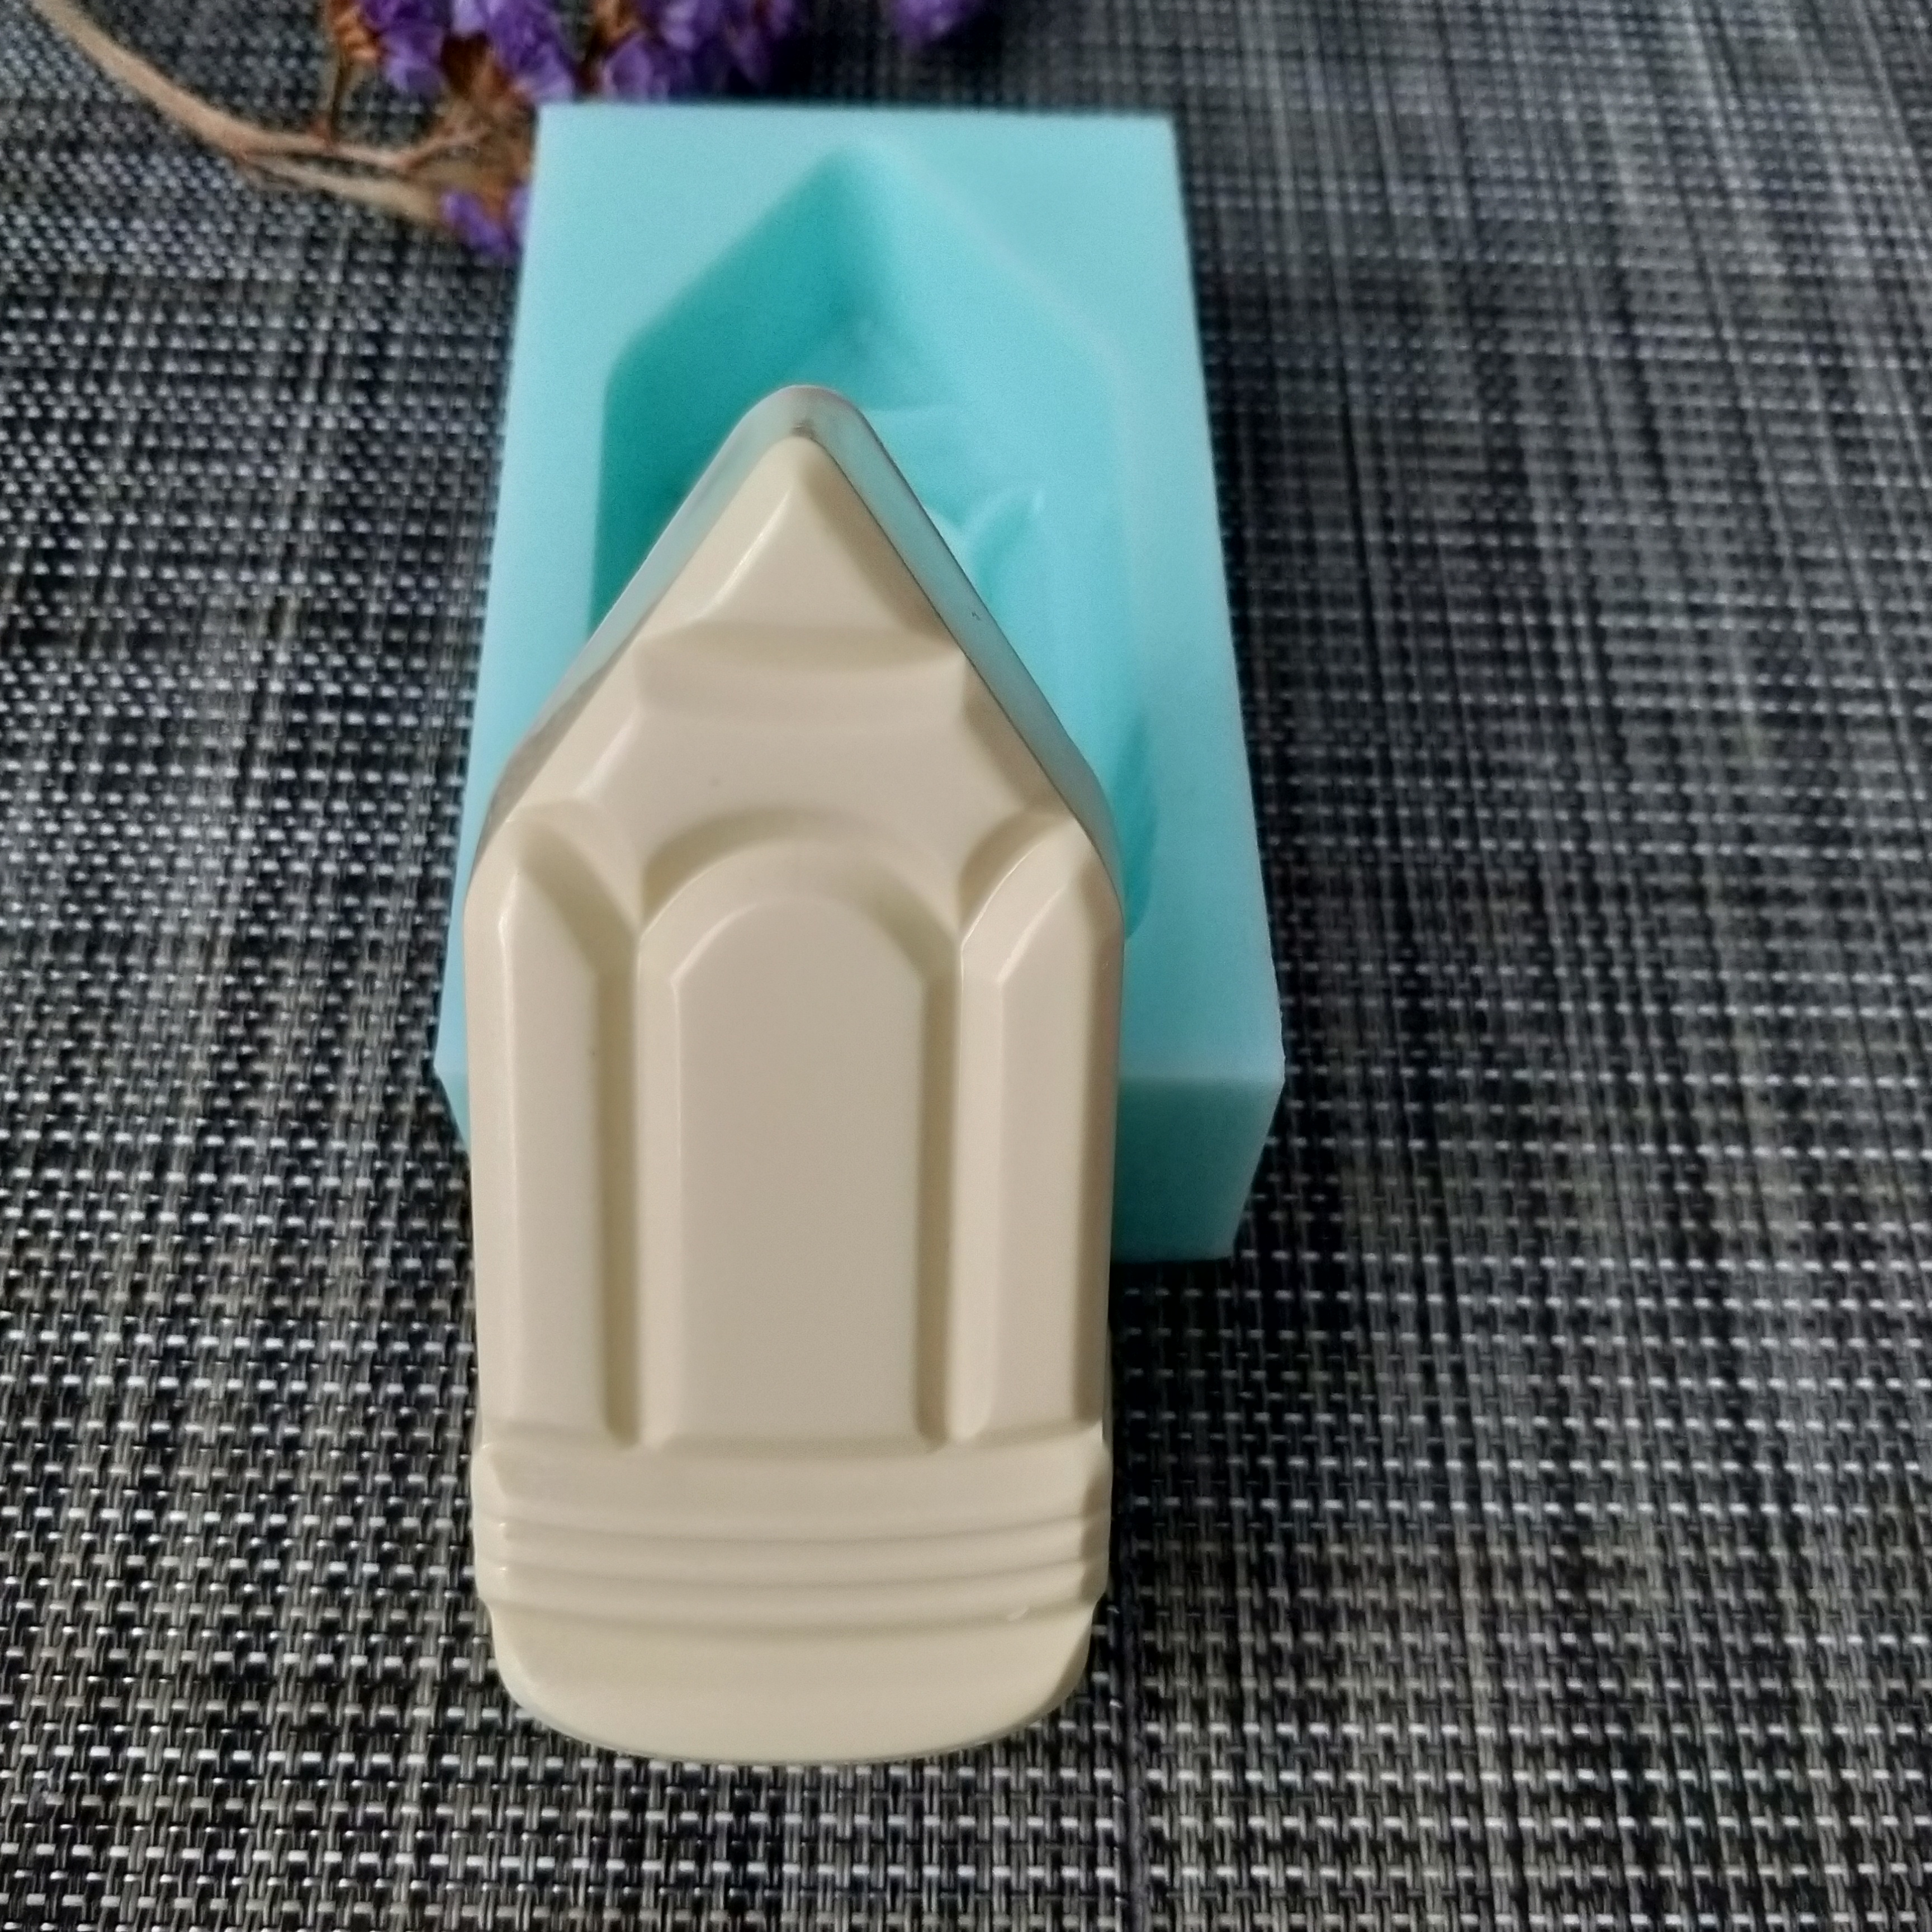 QT0147 PRZY pencil silicone mold soap mould handmade soap making molds candle silicone mold resin clay mold